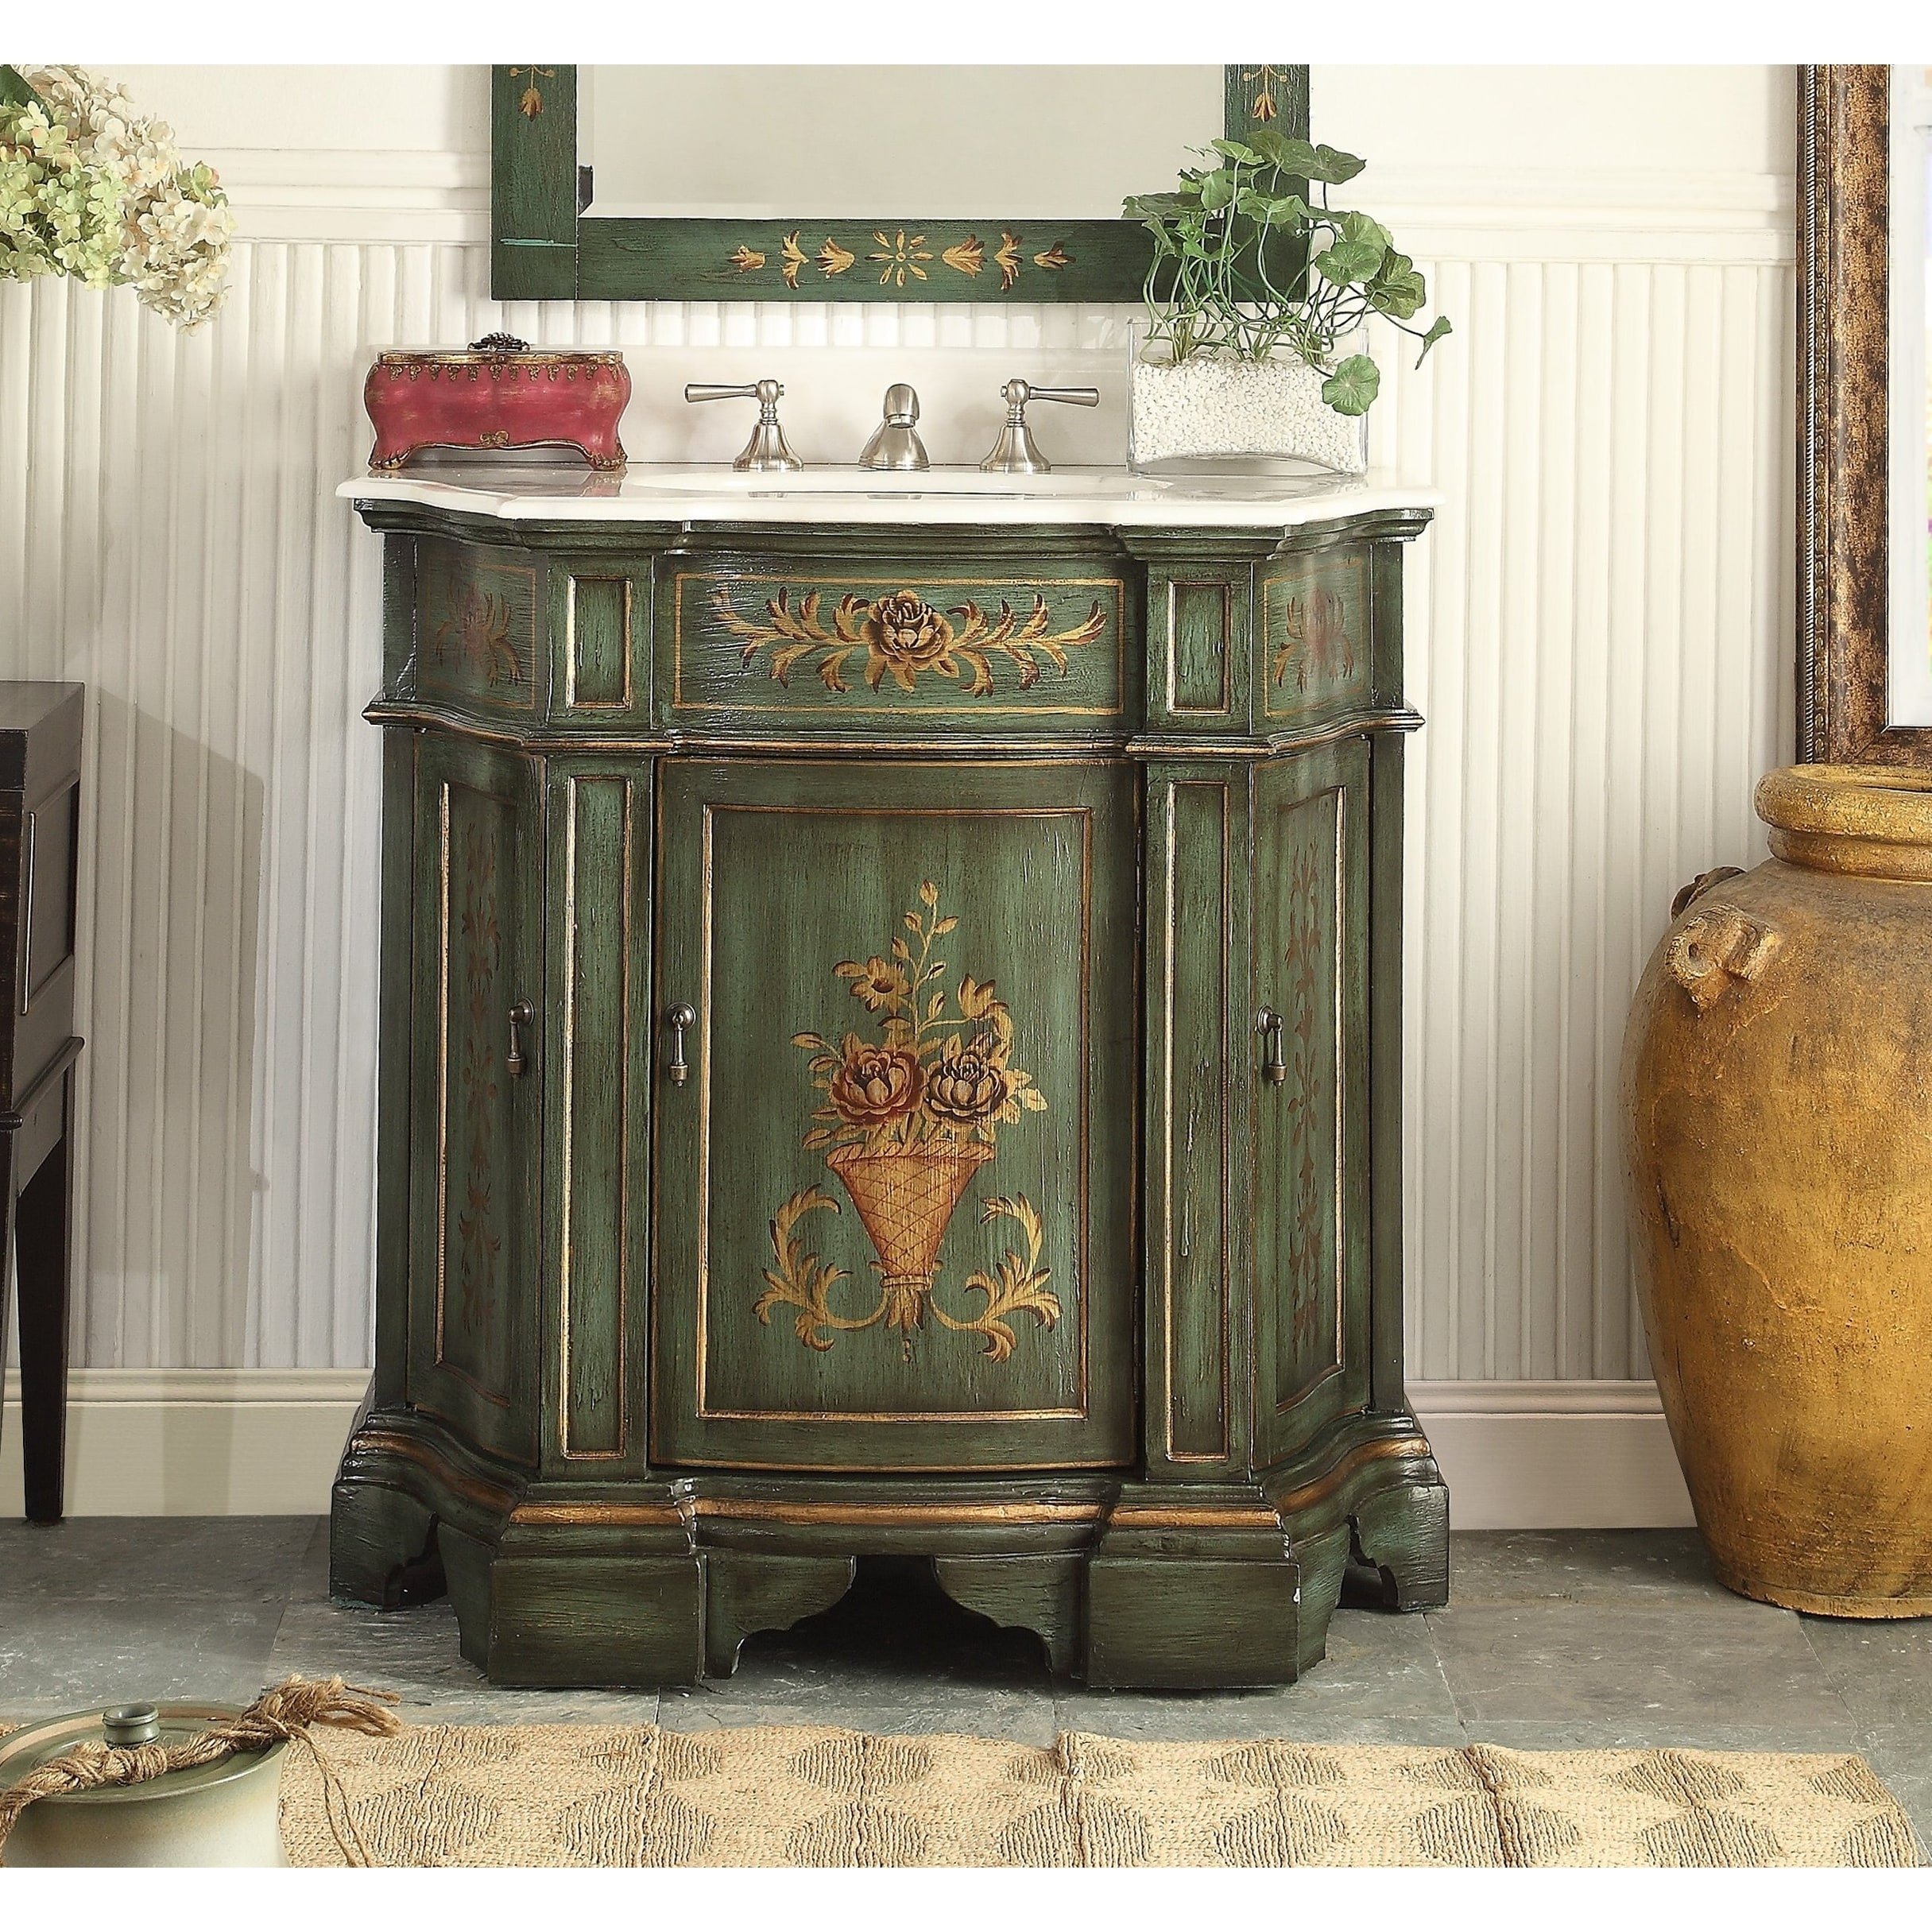 35 Benton Collection Crossfield Antique Style Green Bathroom Vanity Overstock 24017883